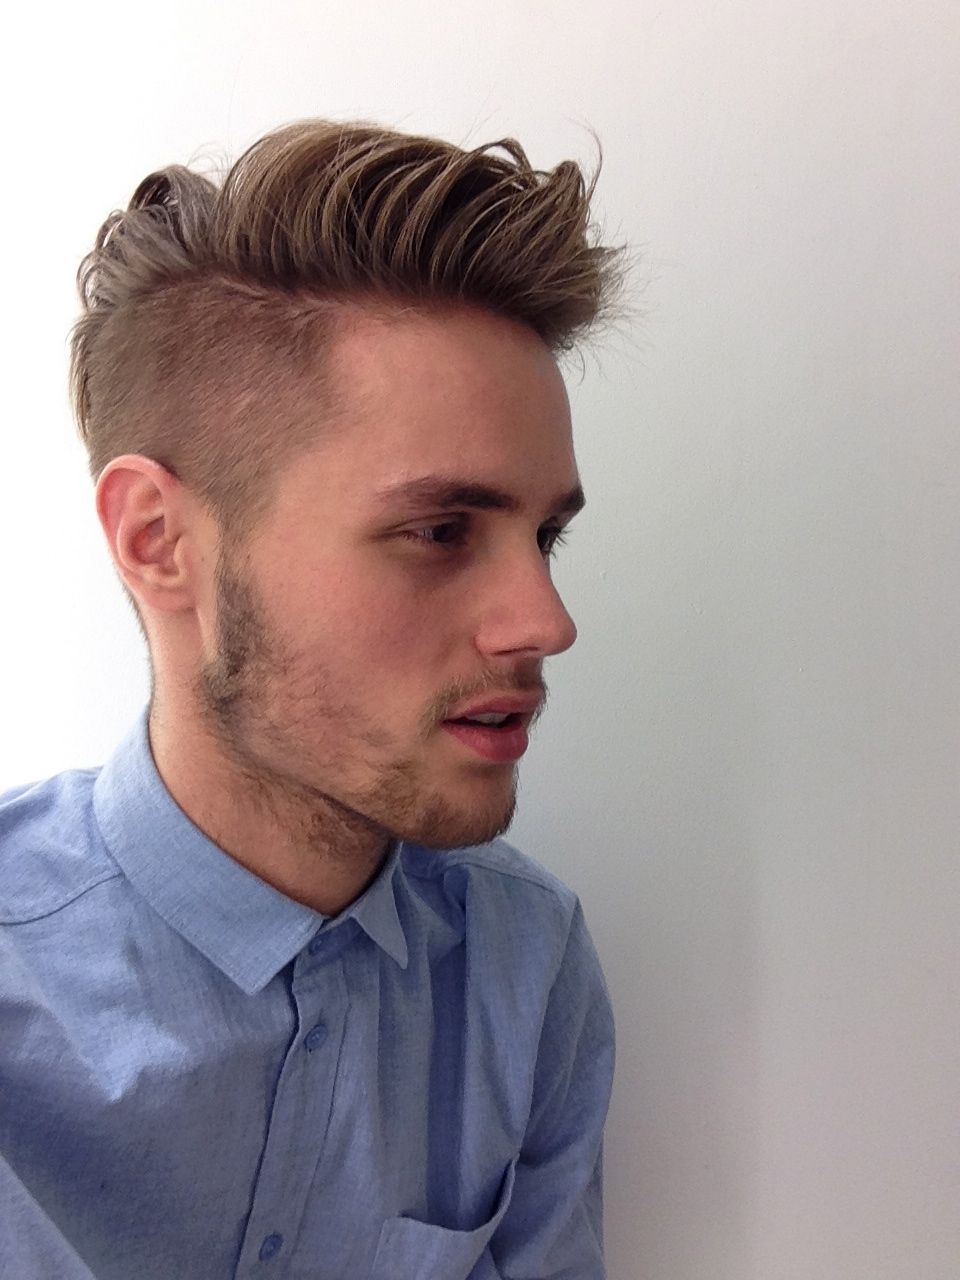 Men s disconnected undercut from schwarzkopf professional - The Undercut For Men Comes In A Variety Of Forms Such As The Short Undercut Long Undercut And Disconnected Undercut